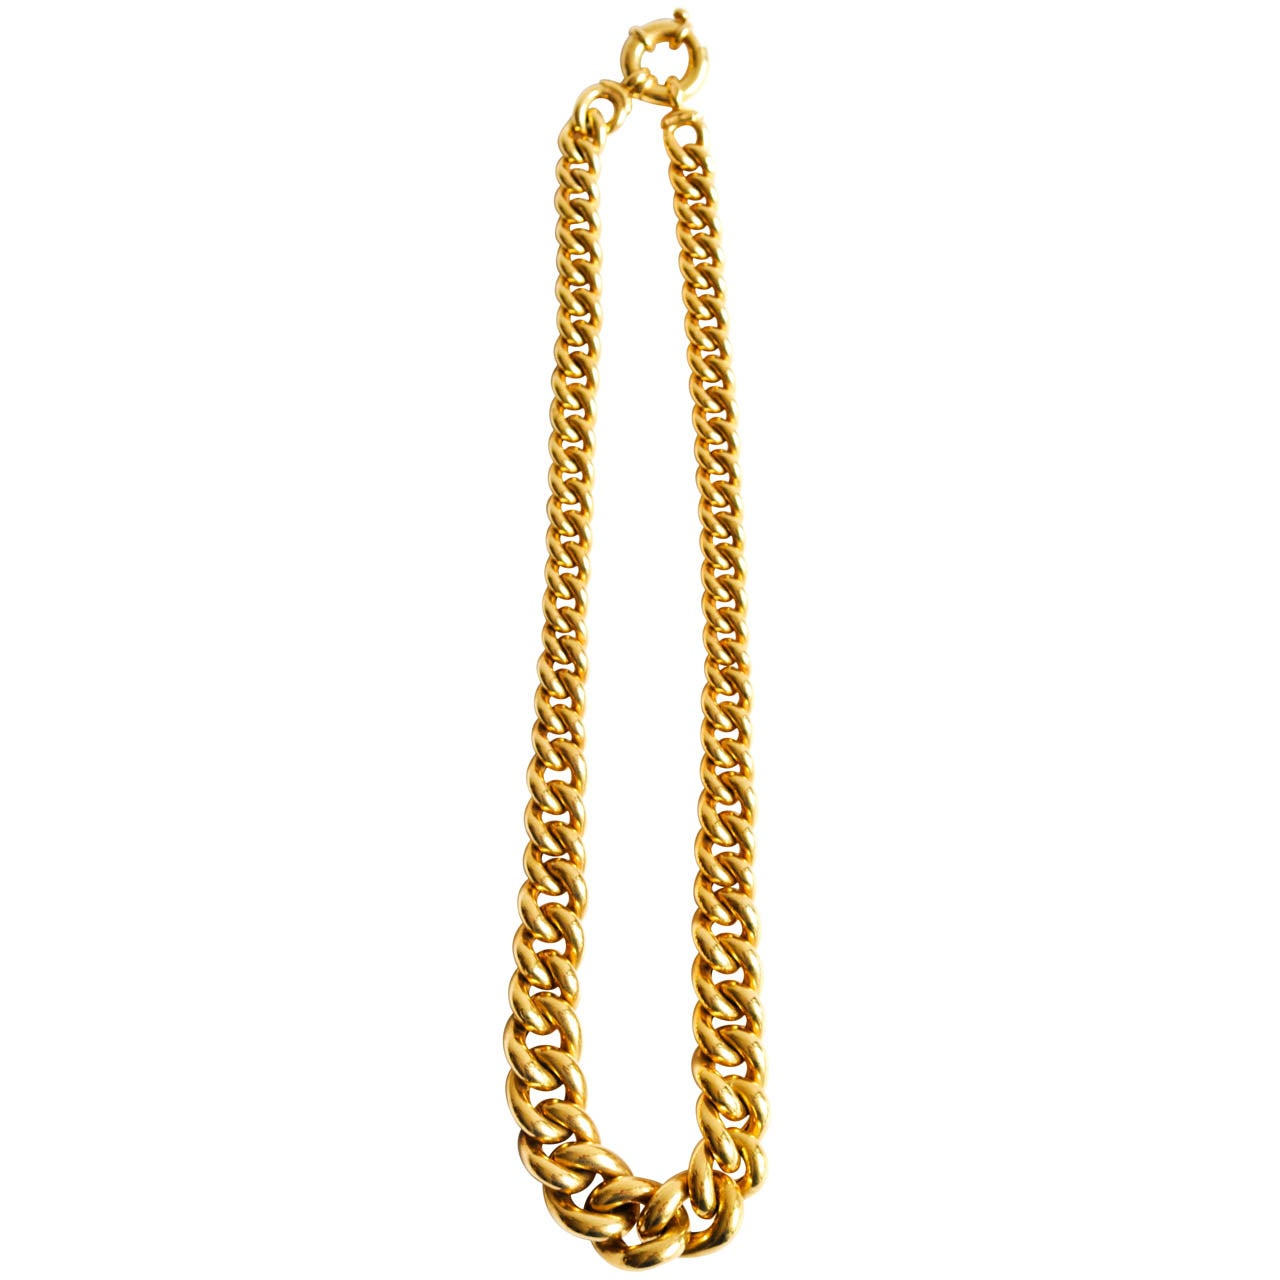 italian 14k gold graduated link necklace at 1stdibs